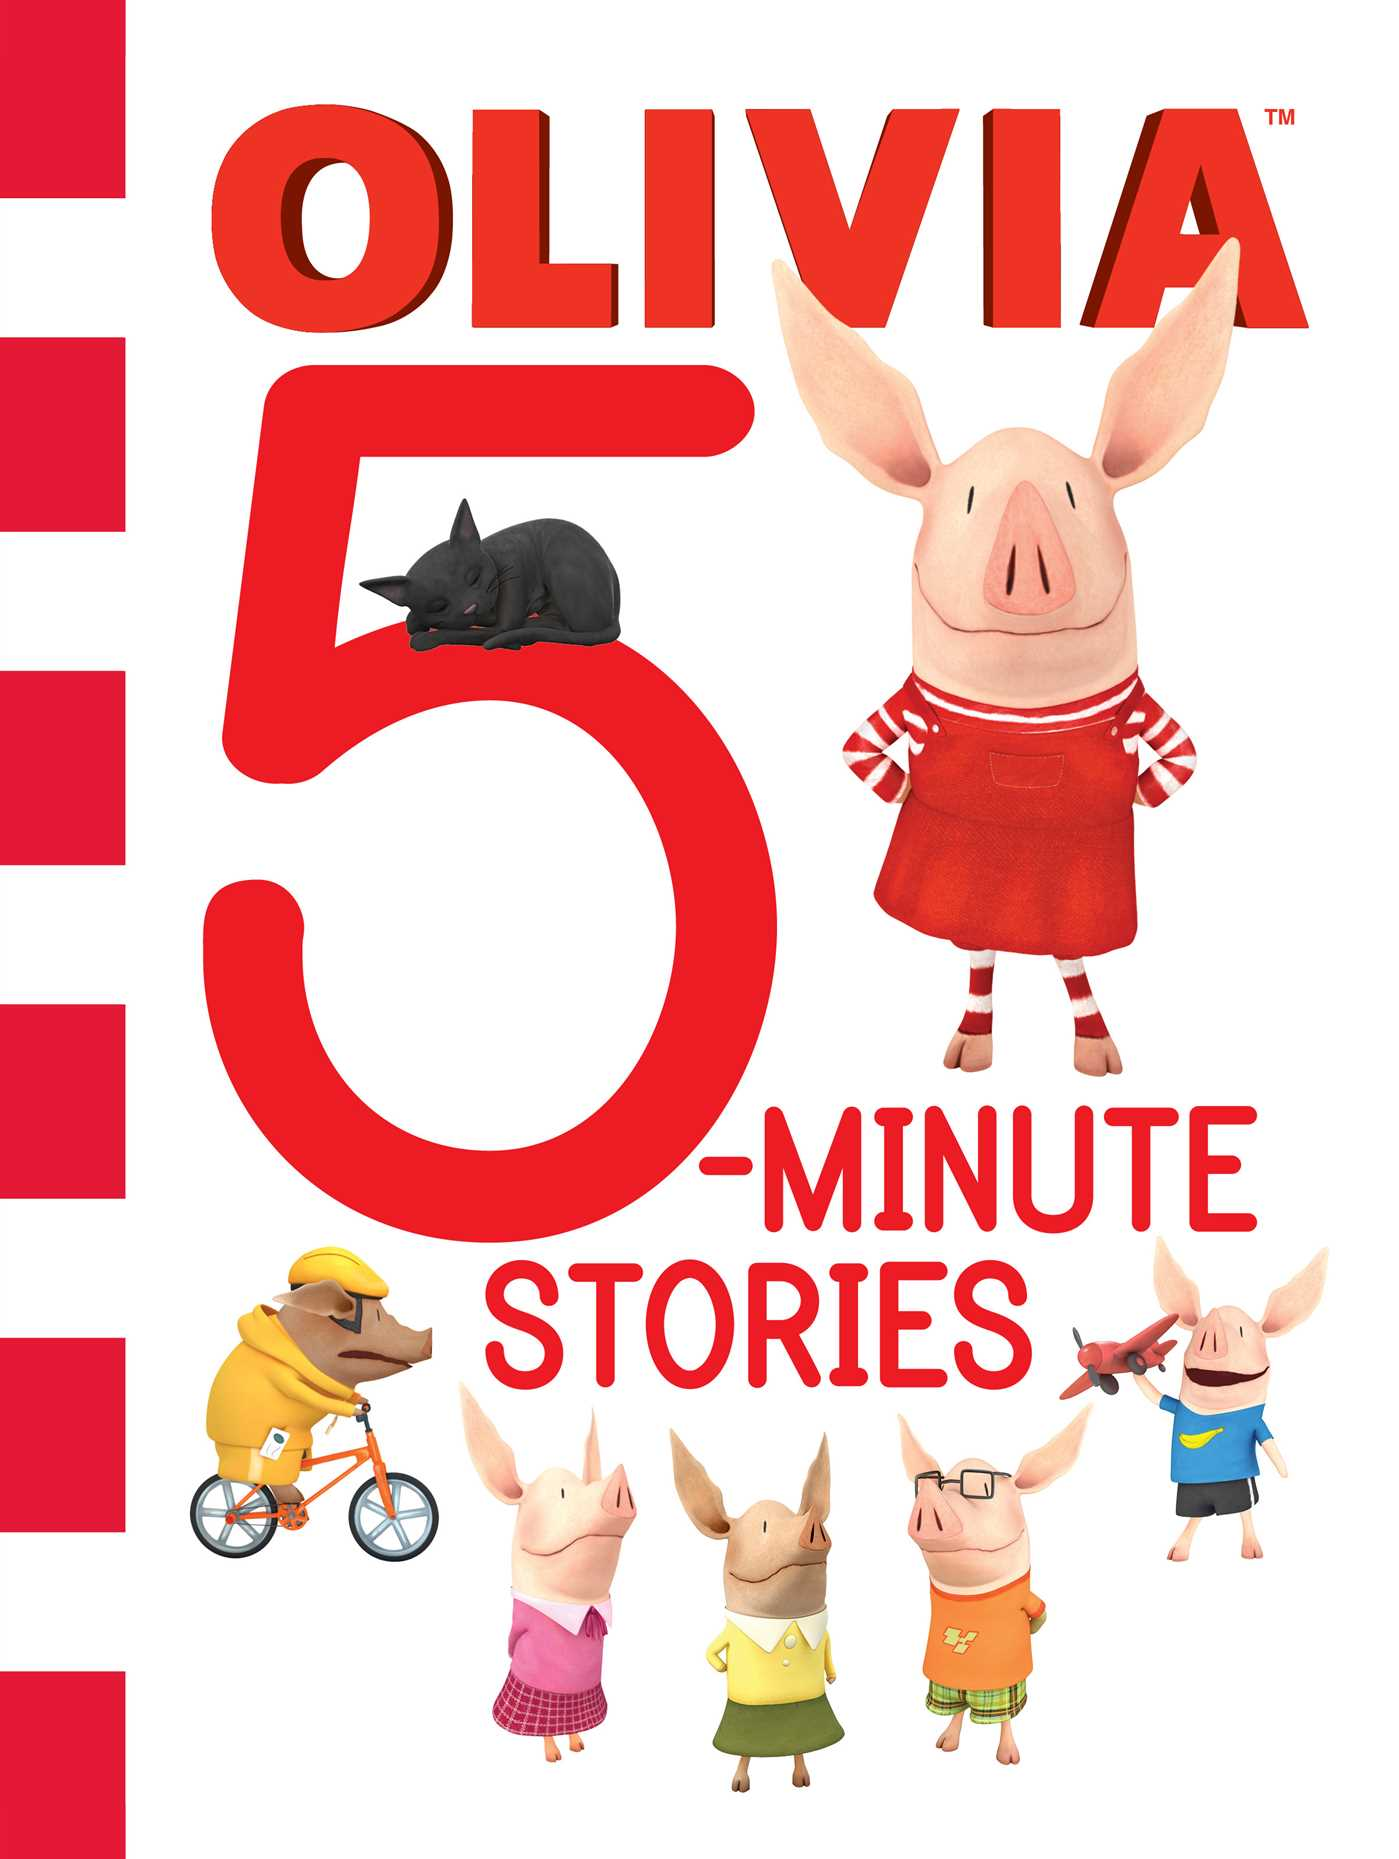 Olivia 5 minute stories 9781534411630 hr